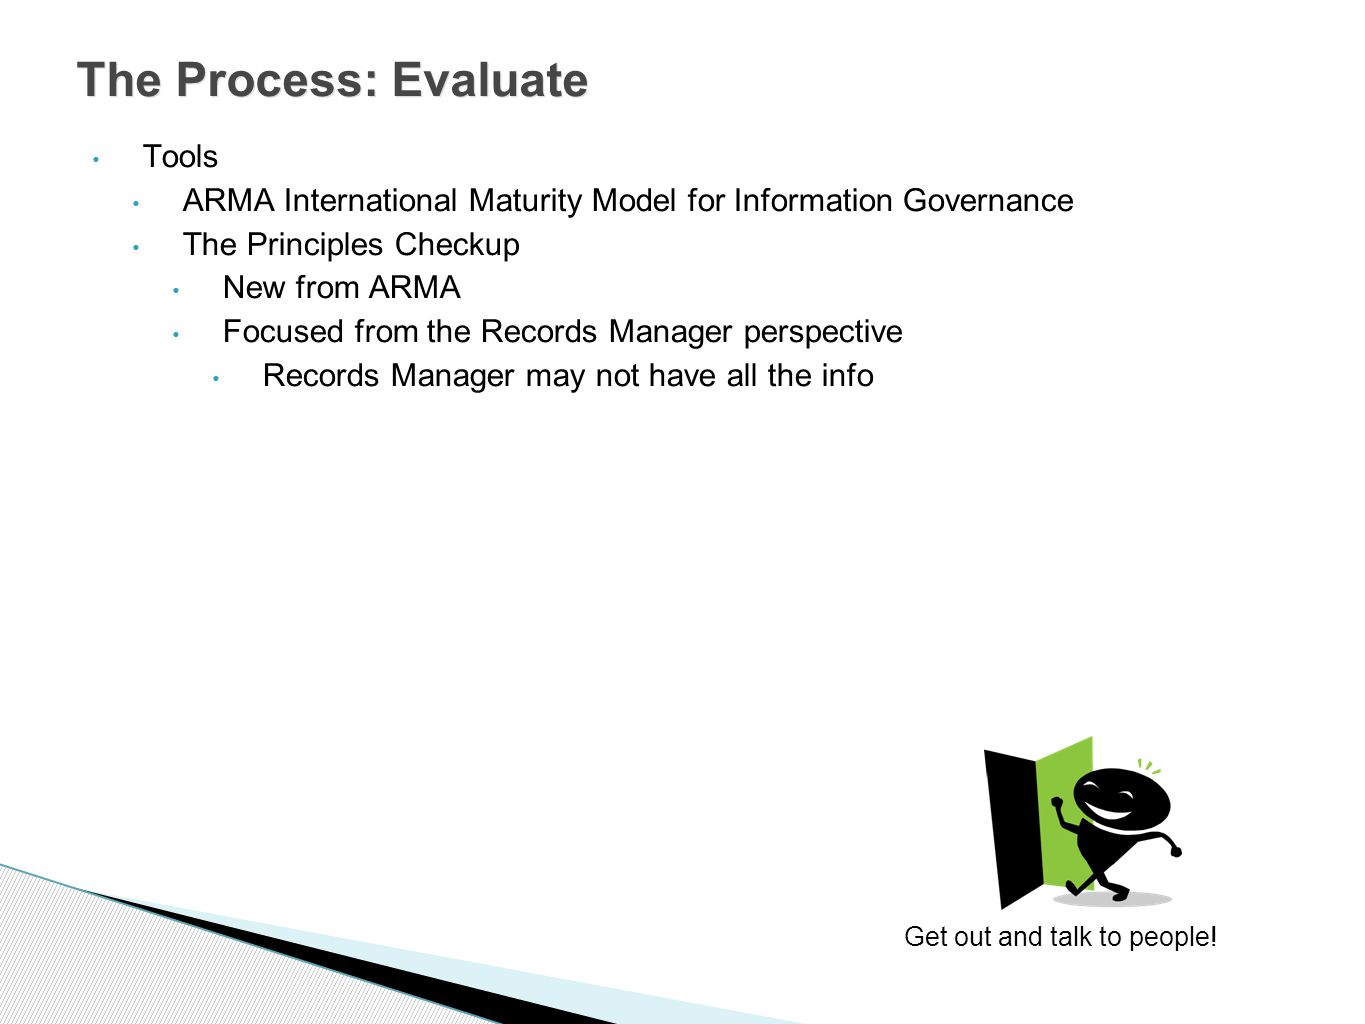 Tools ARMA International Maturity Model for Information Governance The Principles Checkup New from ARMA Focused from the Records Manager perspective Records Manager may not have all the info The Process: Evaluate Get out and talk to people!